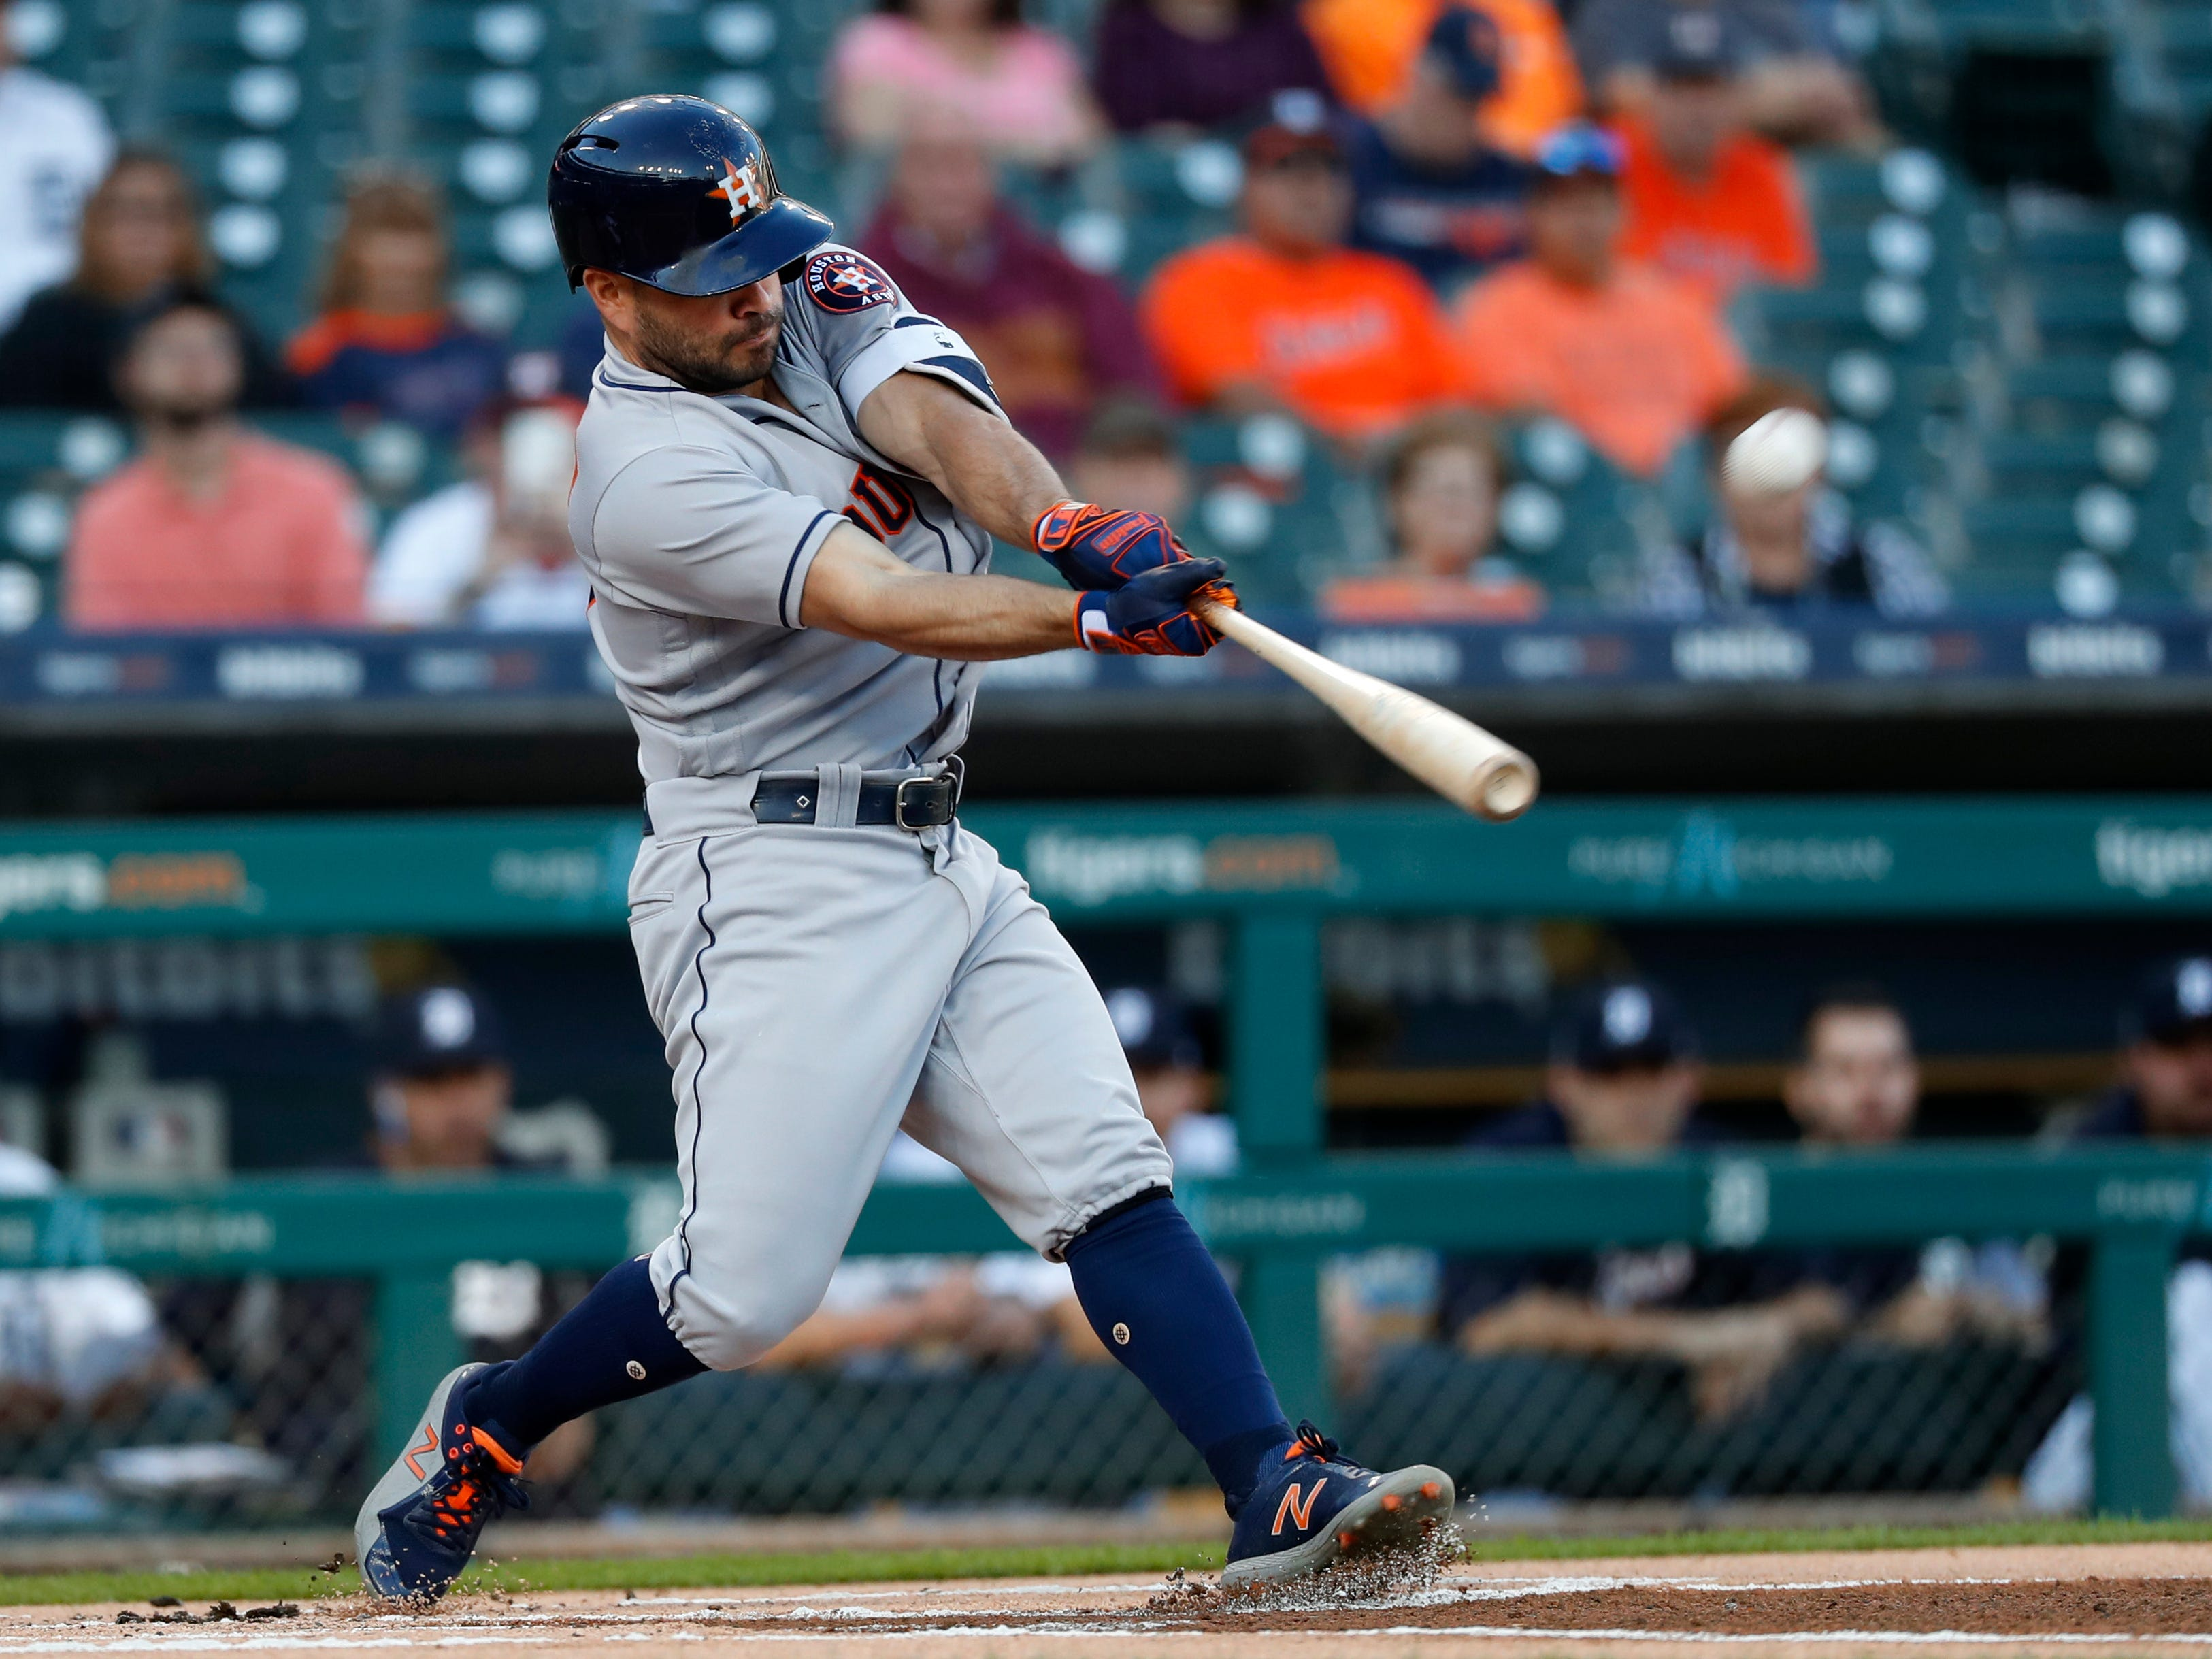 Houston Astros' Jose Altuve hits a leadoff solo home run against the Detroit Tigers in the first inning of a baseball game in Detroit, Tuesday, Sept. 11, 2018.